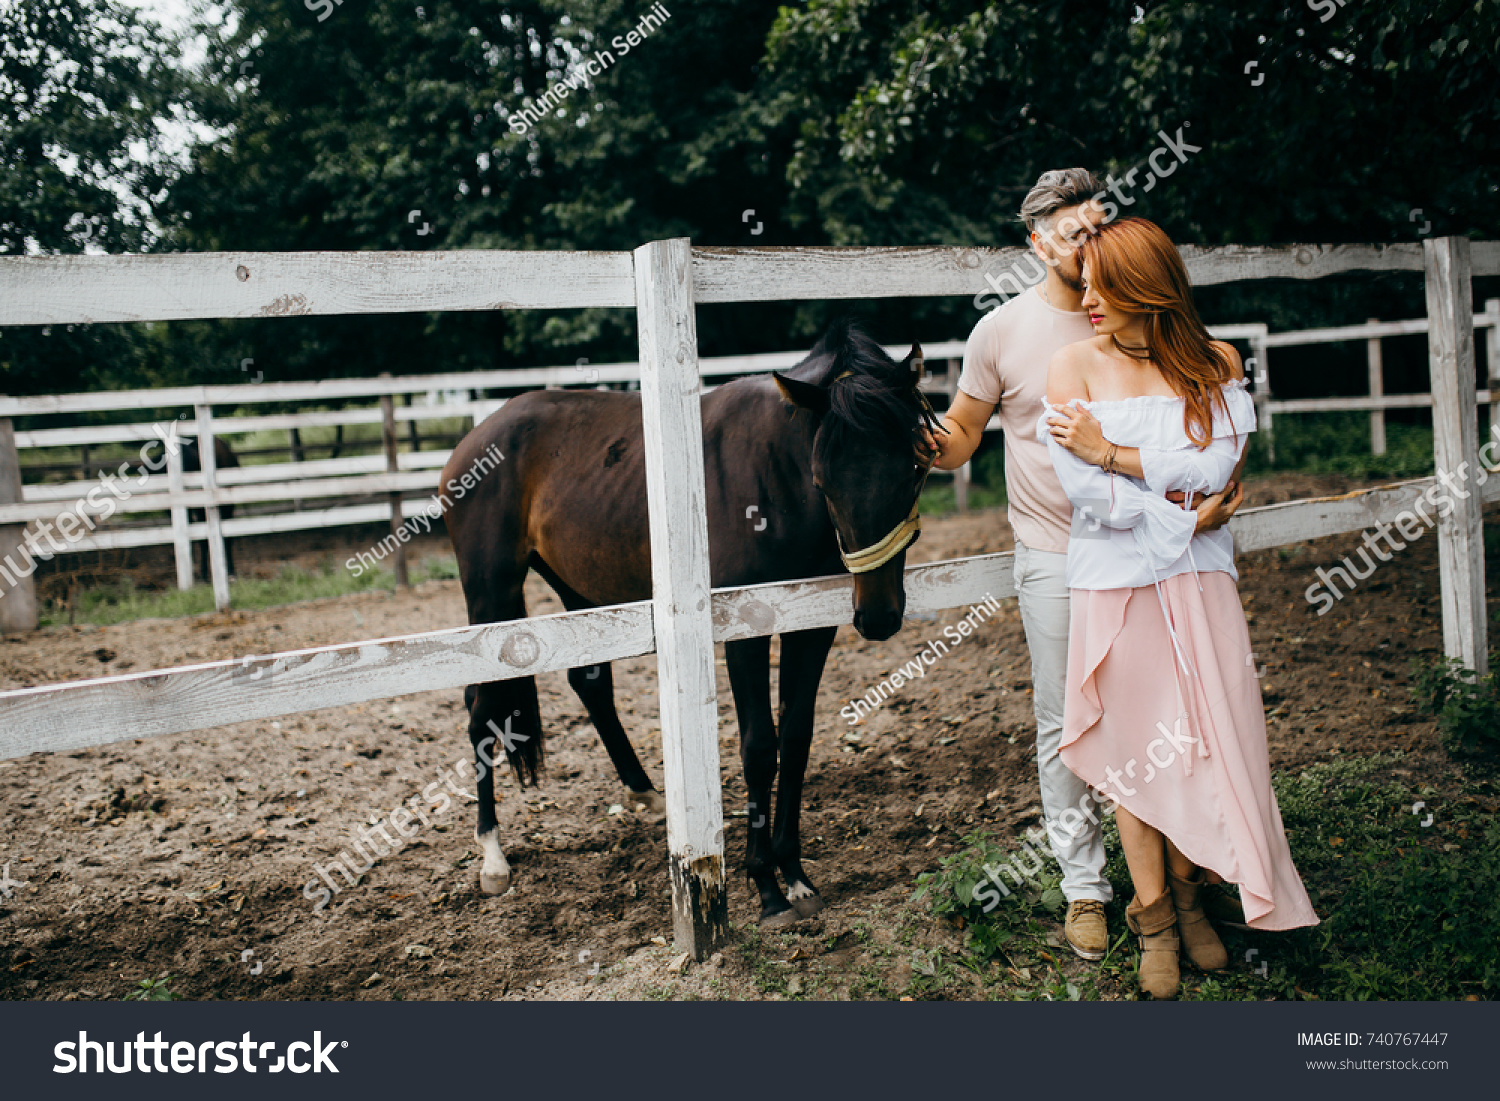 Beautiful Couple Horse Stables Stock Photo Edit Now 740767447